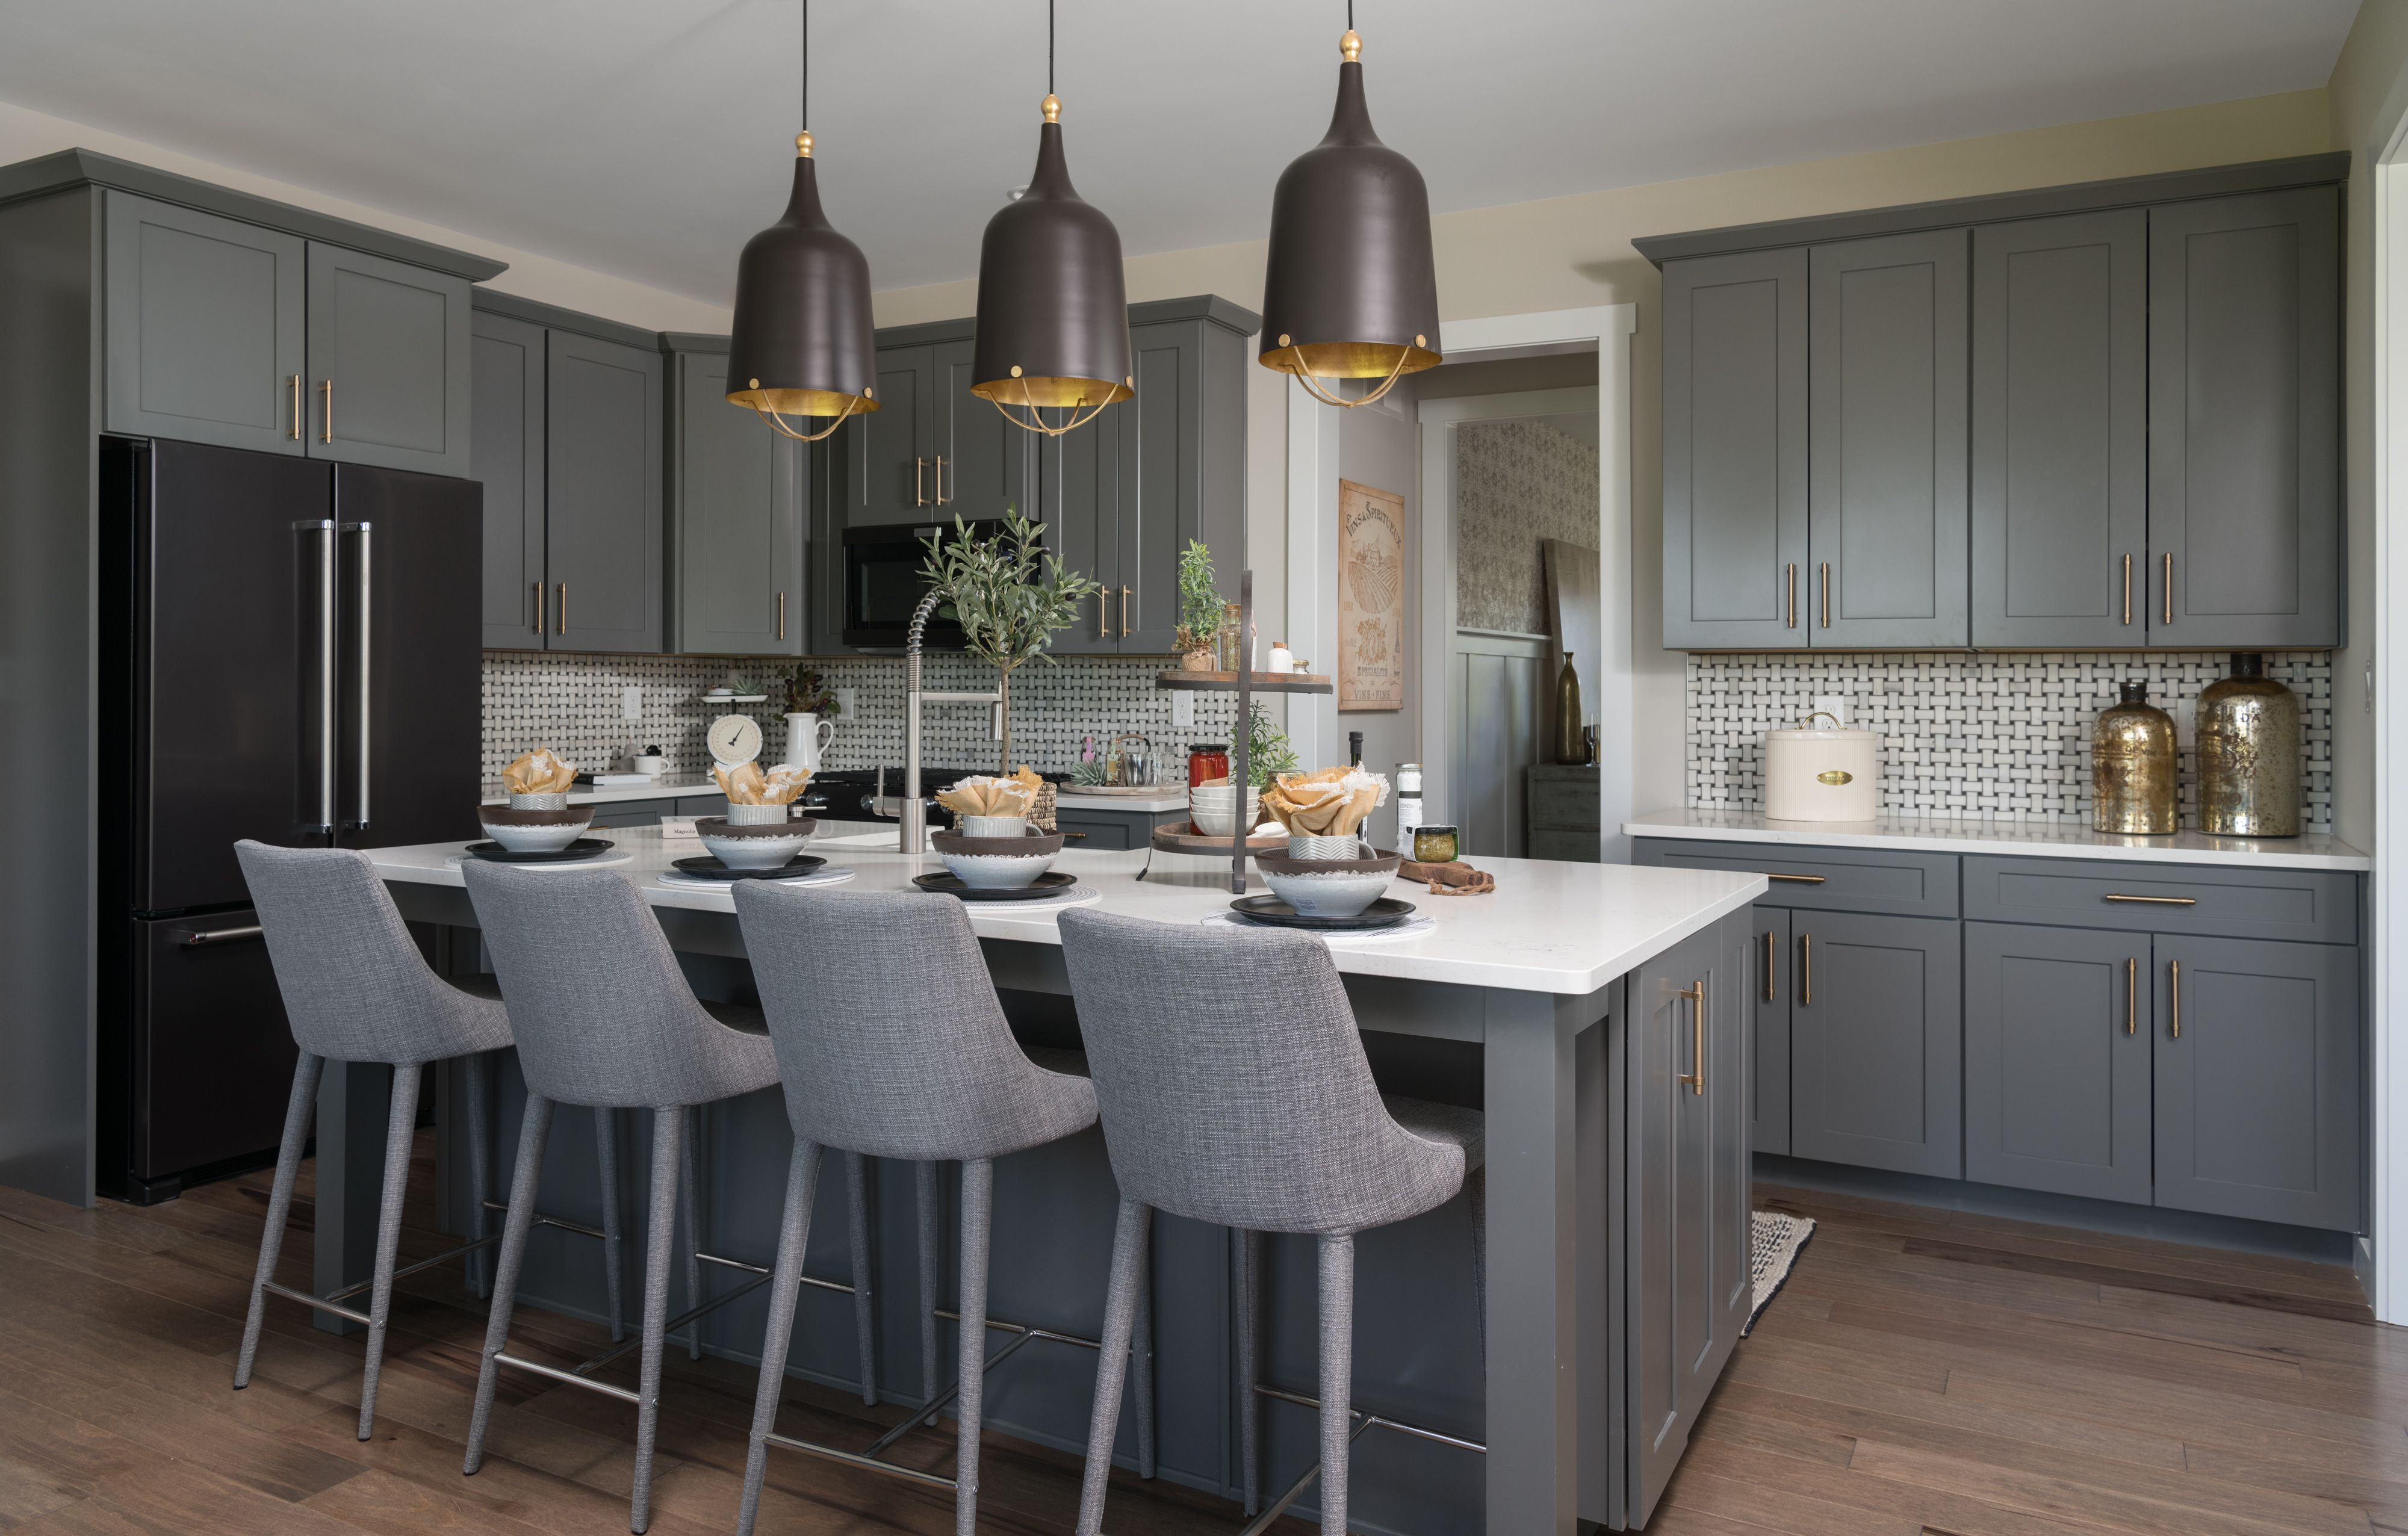 Kitchen featured in the Parker Farmhouse By Keystone Custom Homes in York, PA